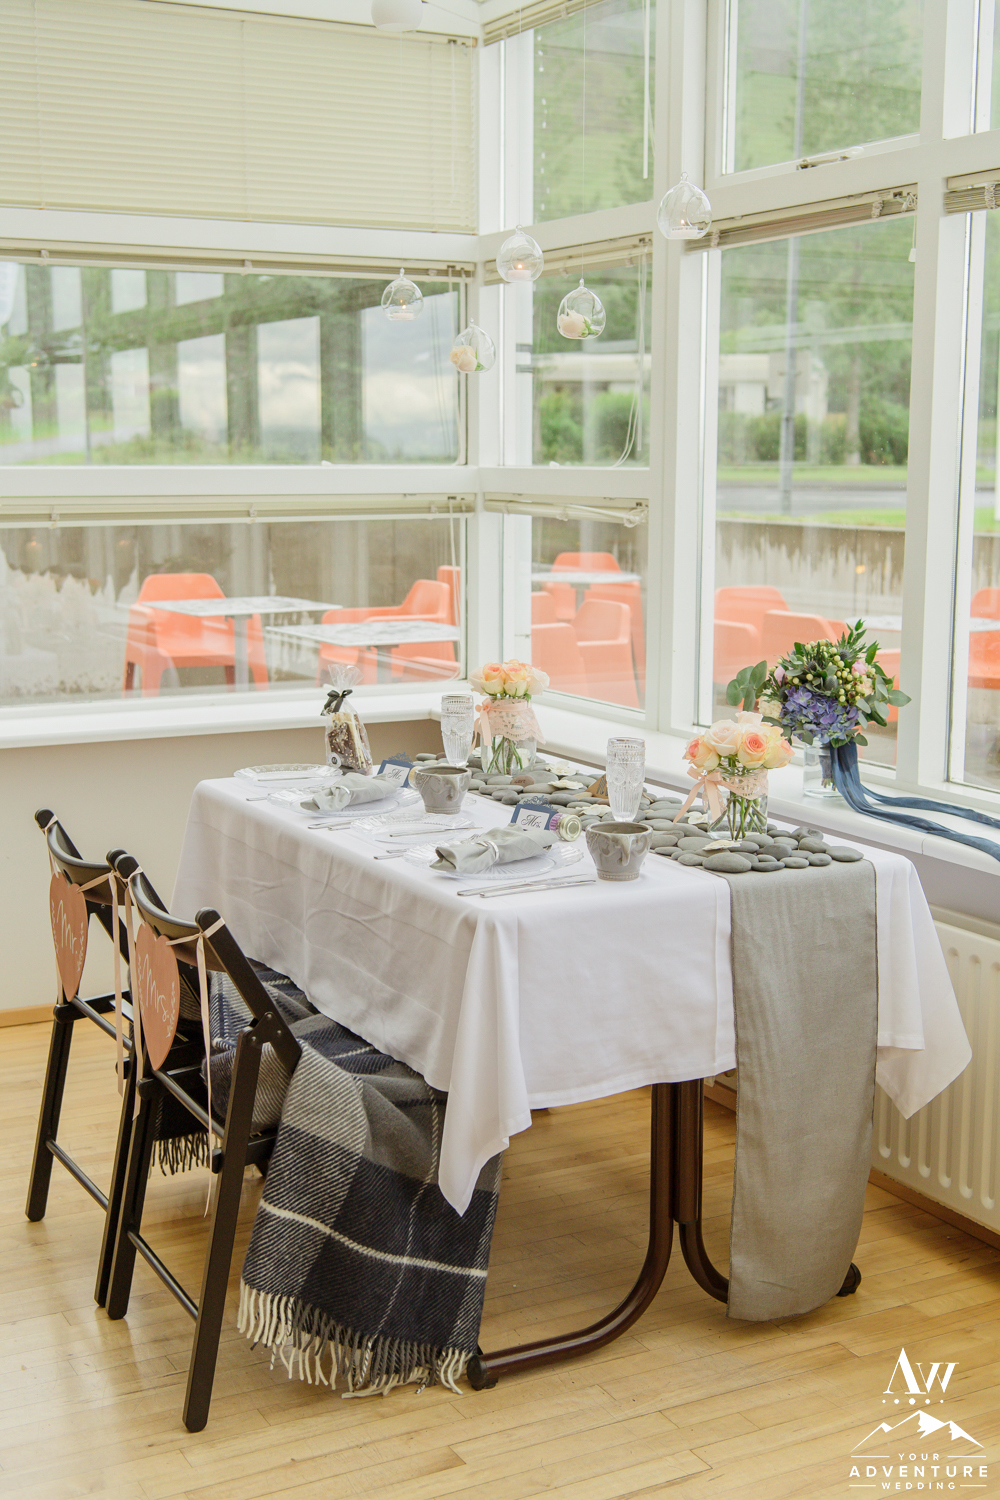 iceland-styled-reception-for-elopement-wedding